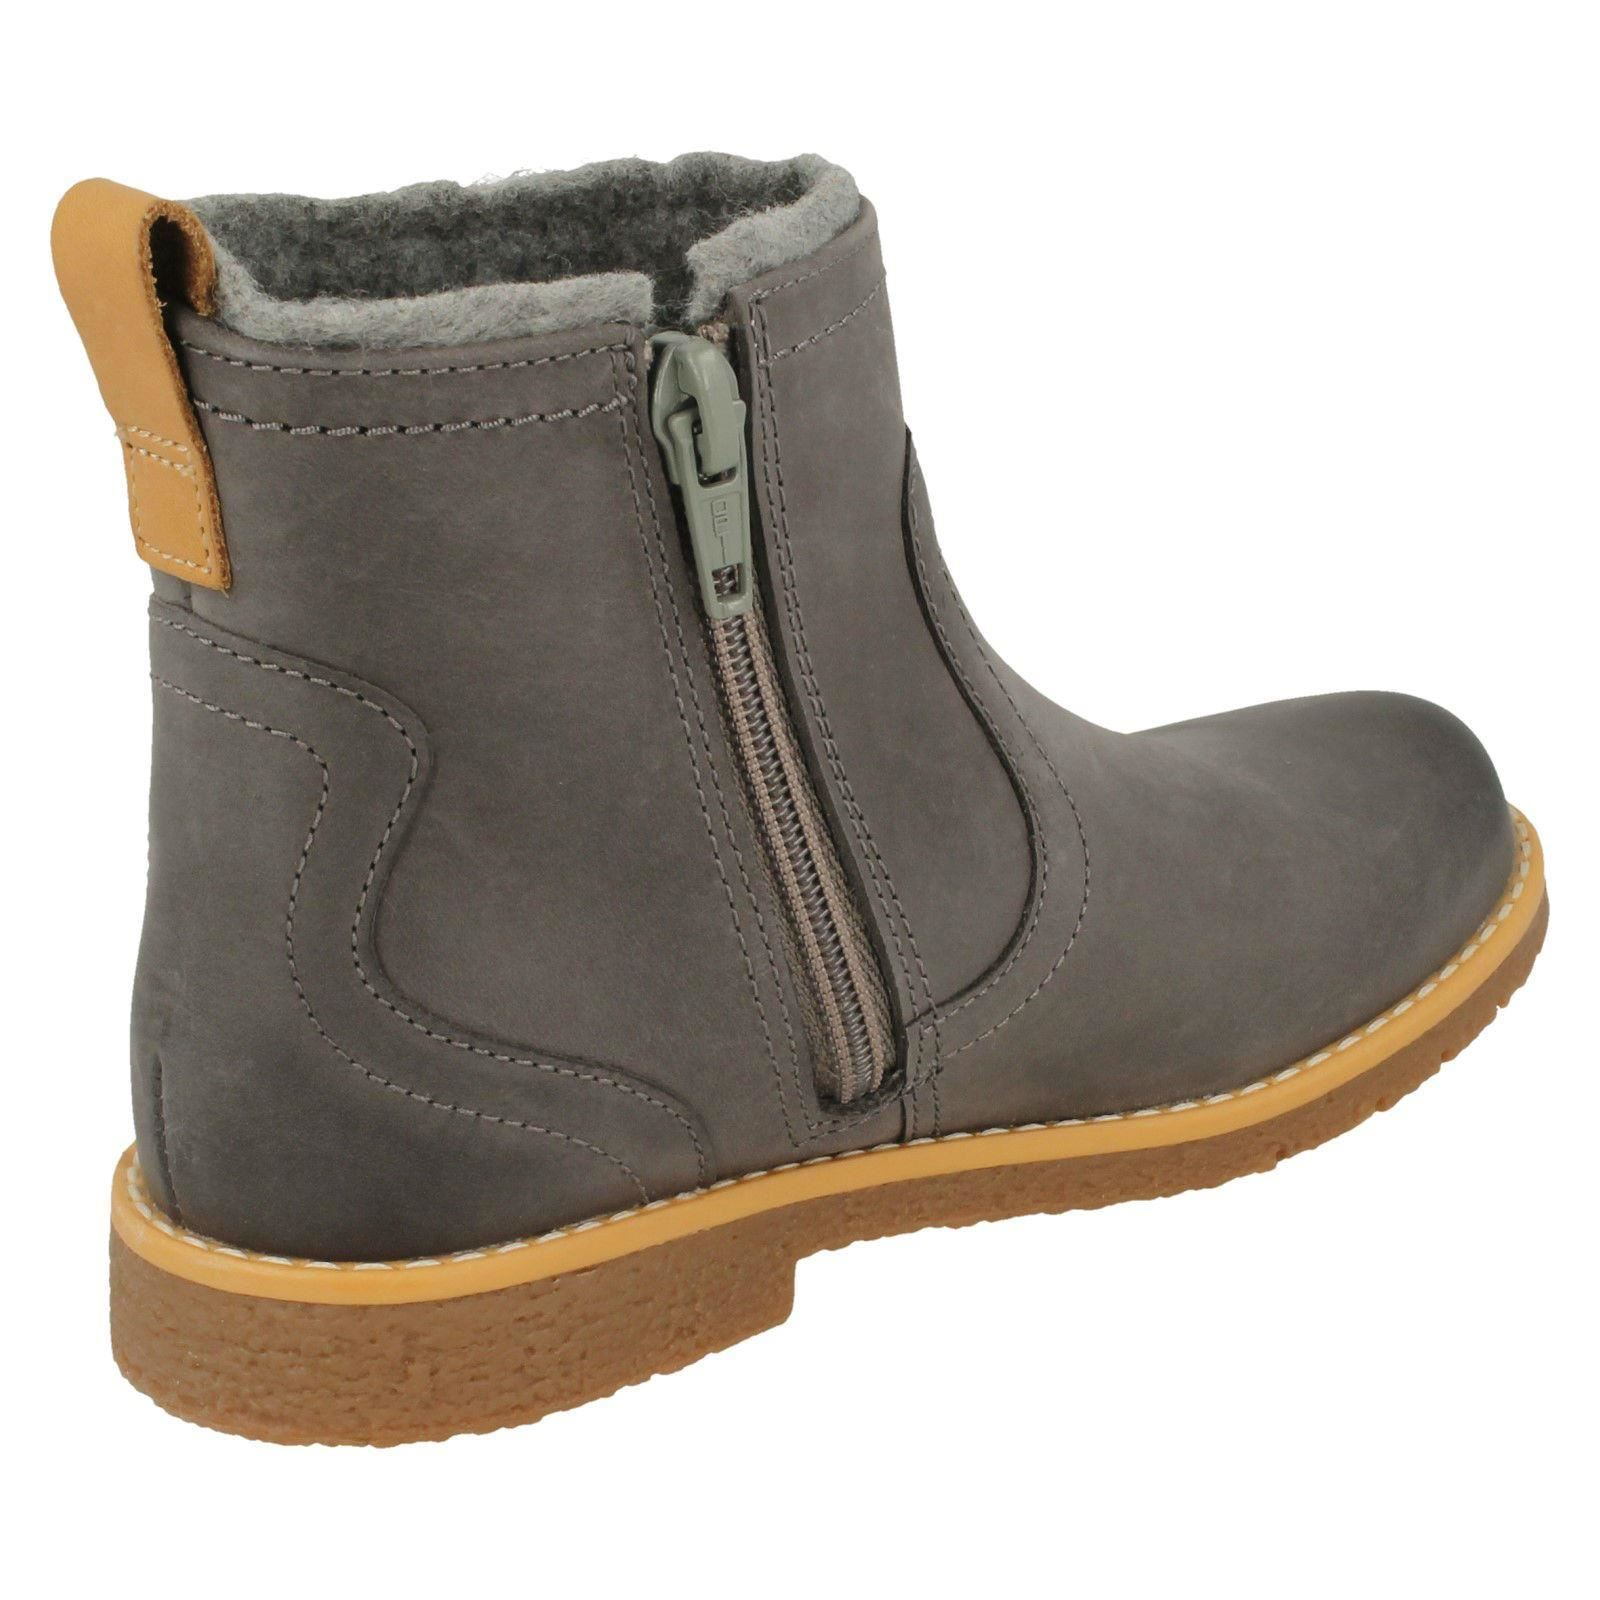 BNIB Clarks Girls Comet Frost Grey Leather Air Spring Boots